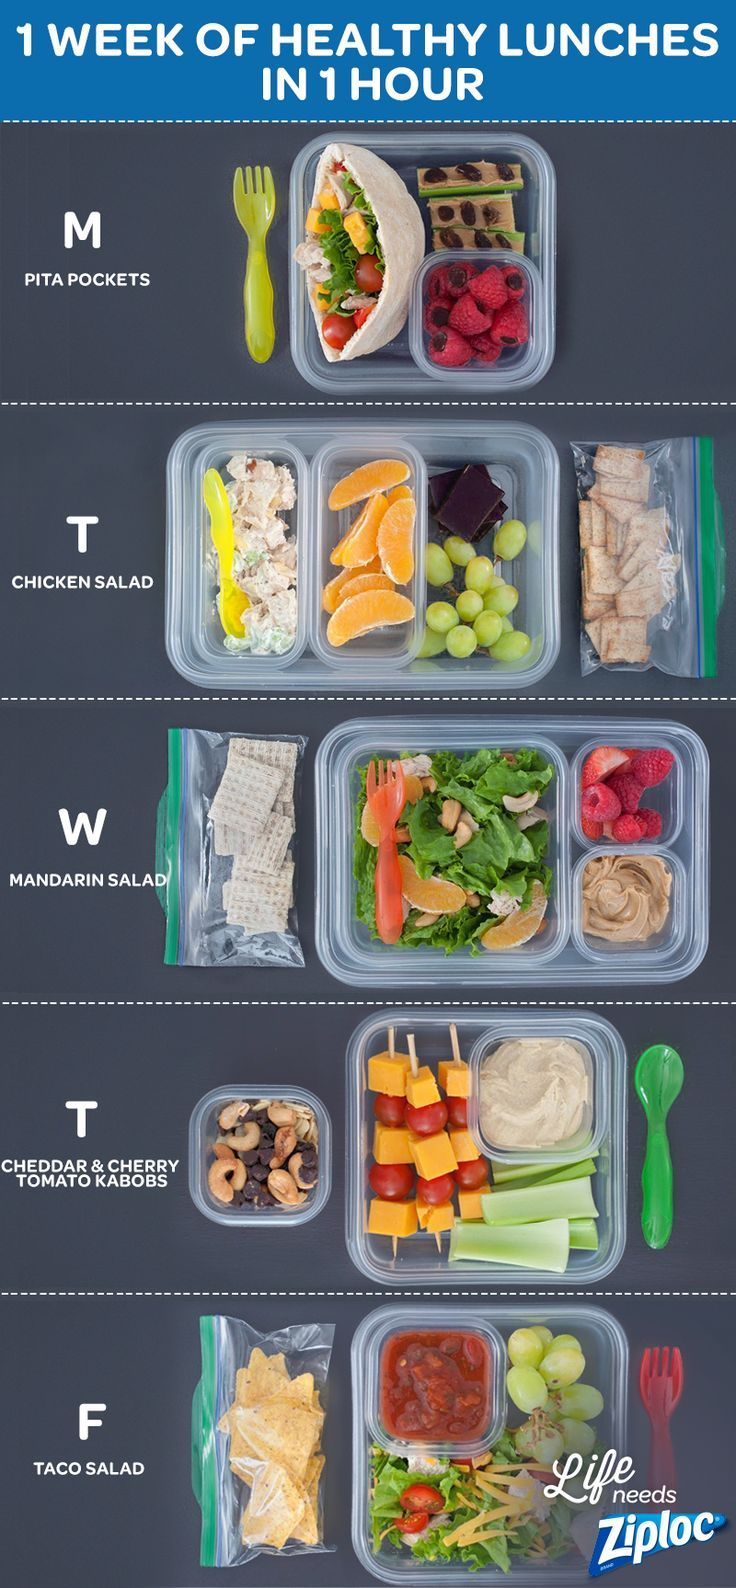 You don't need to spend a ton of money or time on healthy lunches. Shop from one list and make taco salad, cheddar and cherry tomato kabobs, pita pockets, and more in just one hour. Pack it all up in containers, store in the fridge, then grab and go. Makes mornings so much easier when you don't have to think about what you're packing for your kid's school lunch each day. #ad